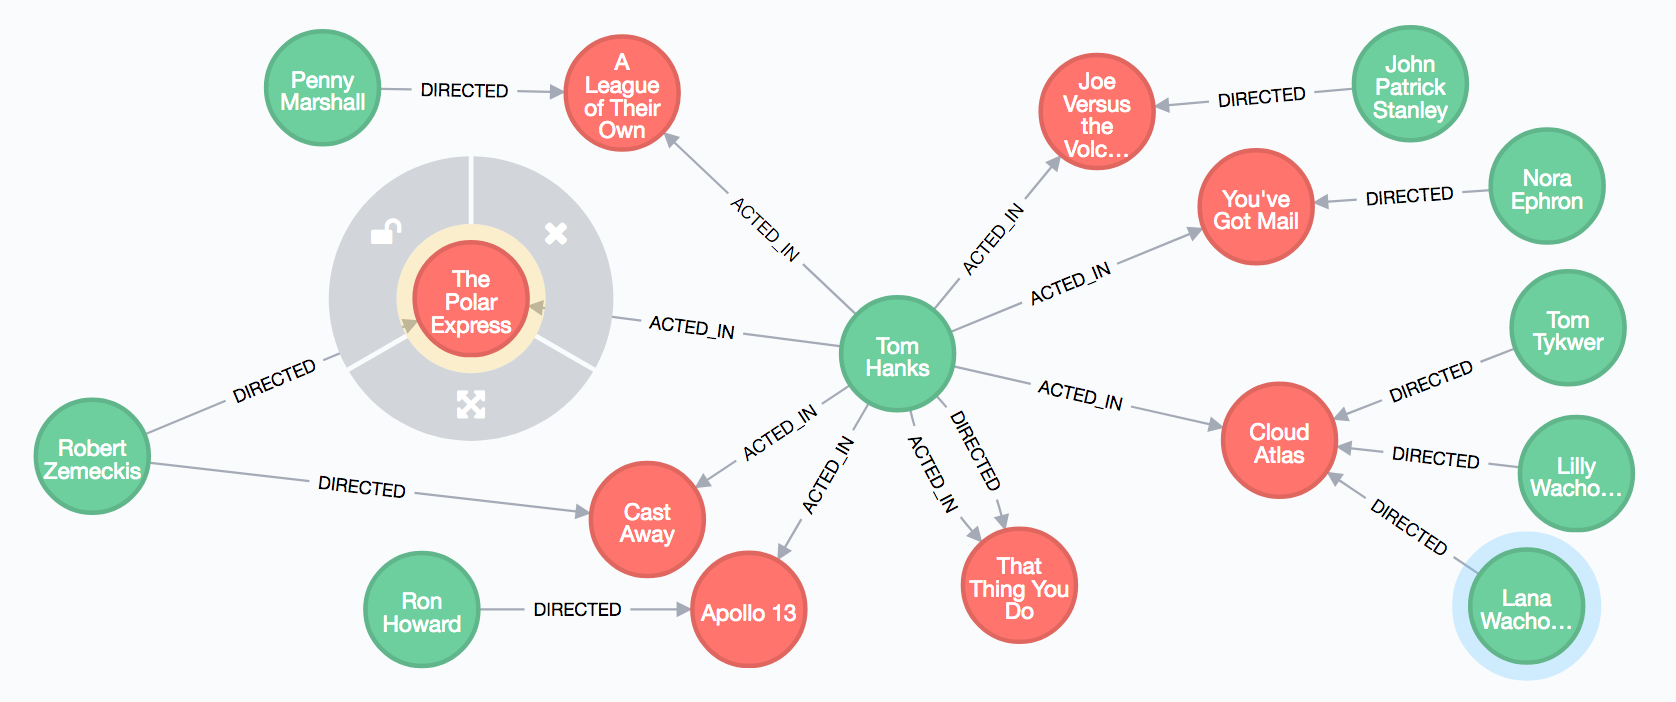 neo4j-movie-graph-1676x702-144758